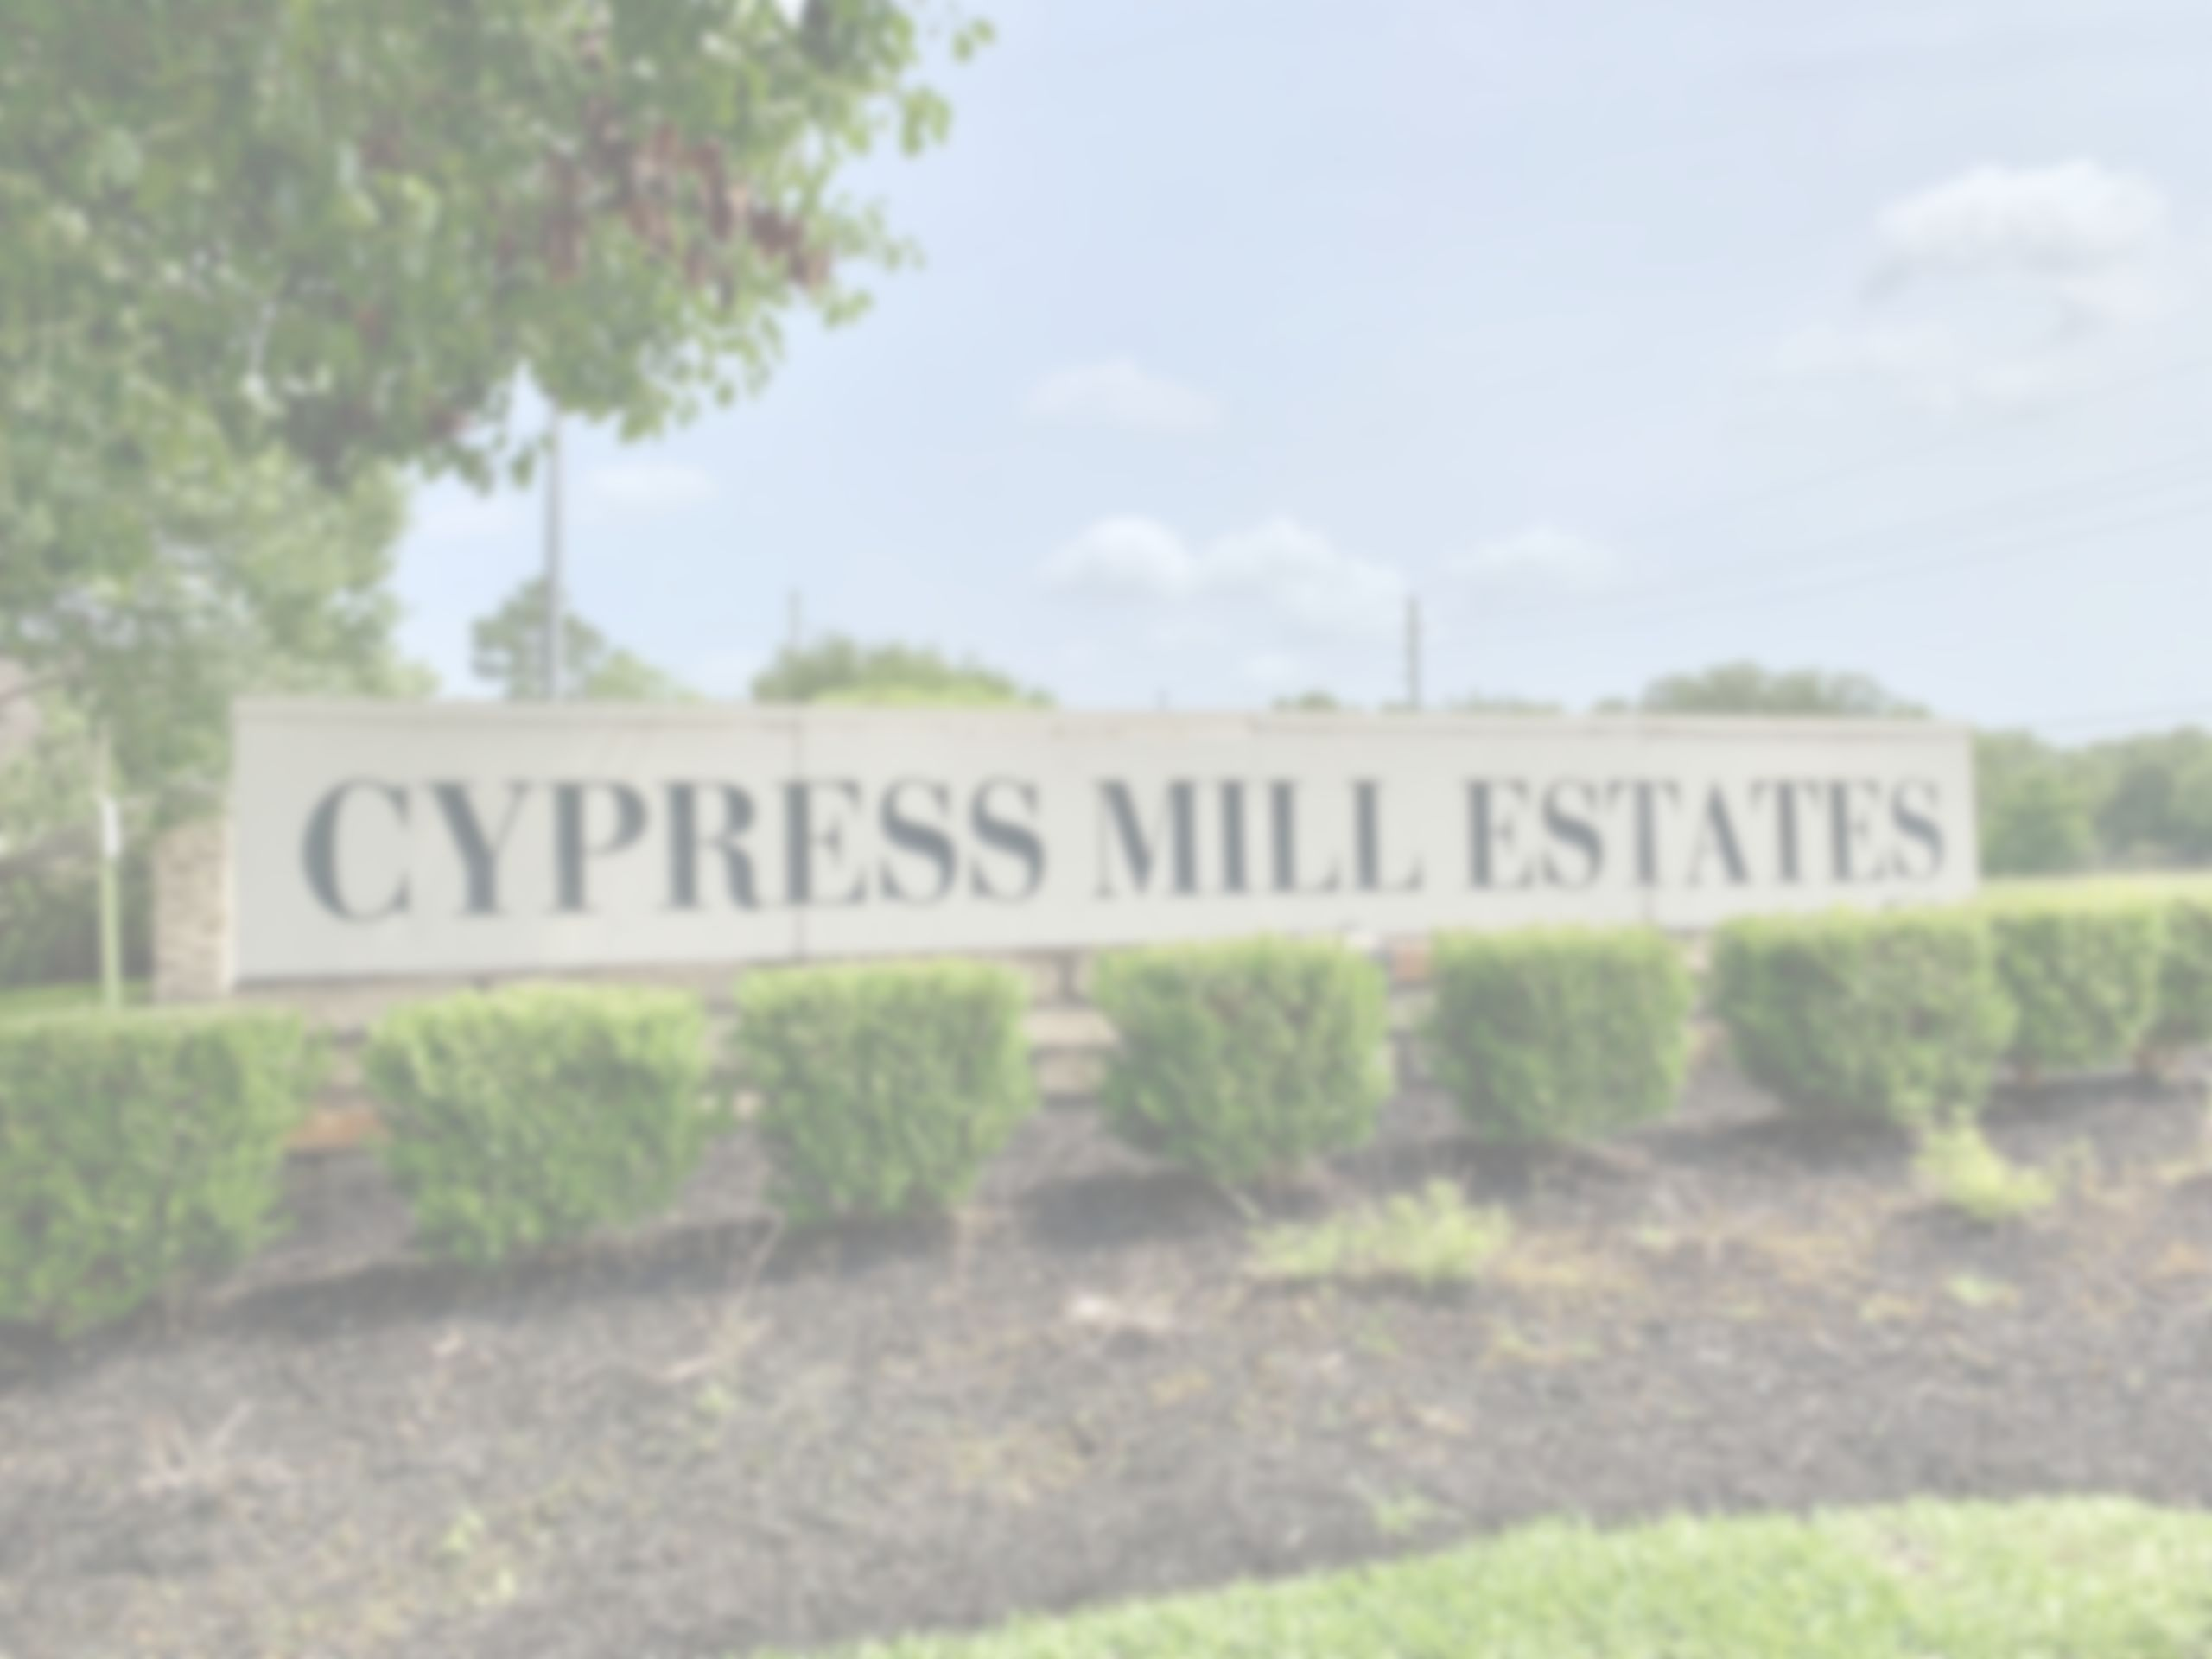 Cypress Mill Estates